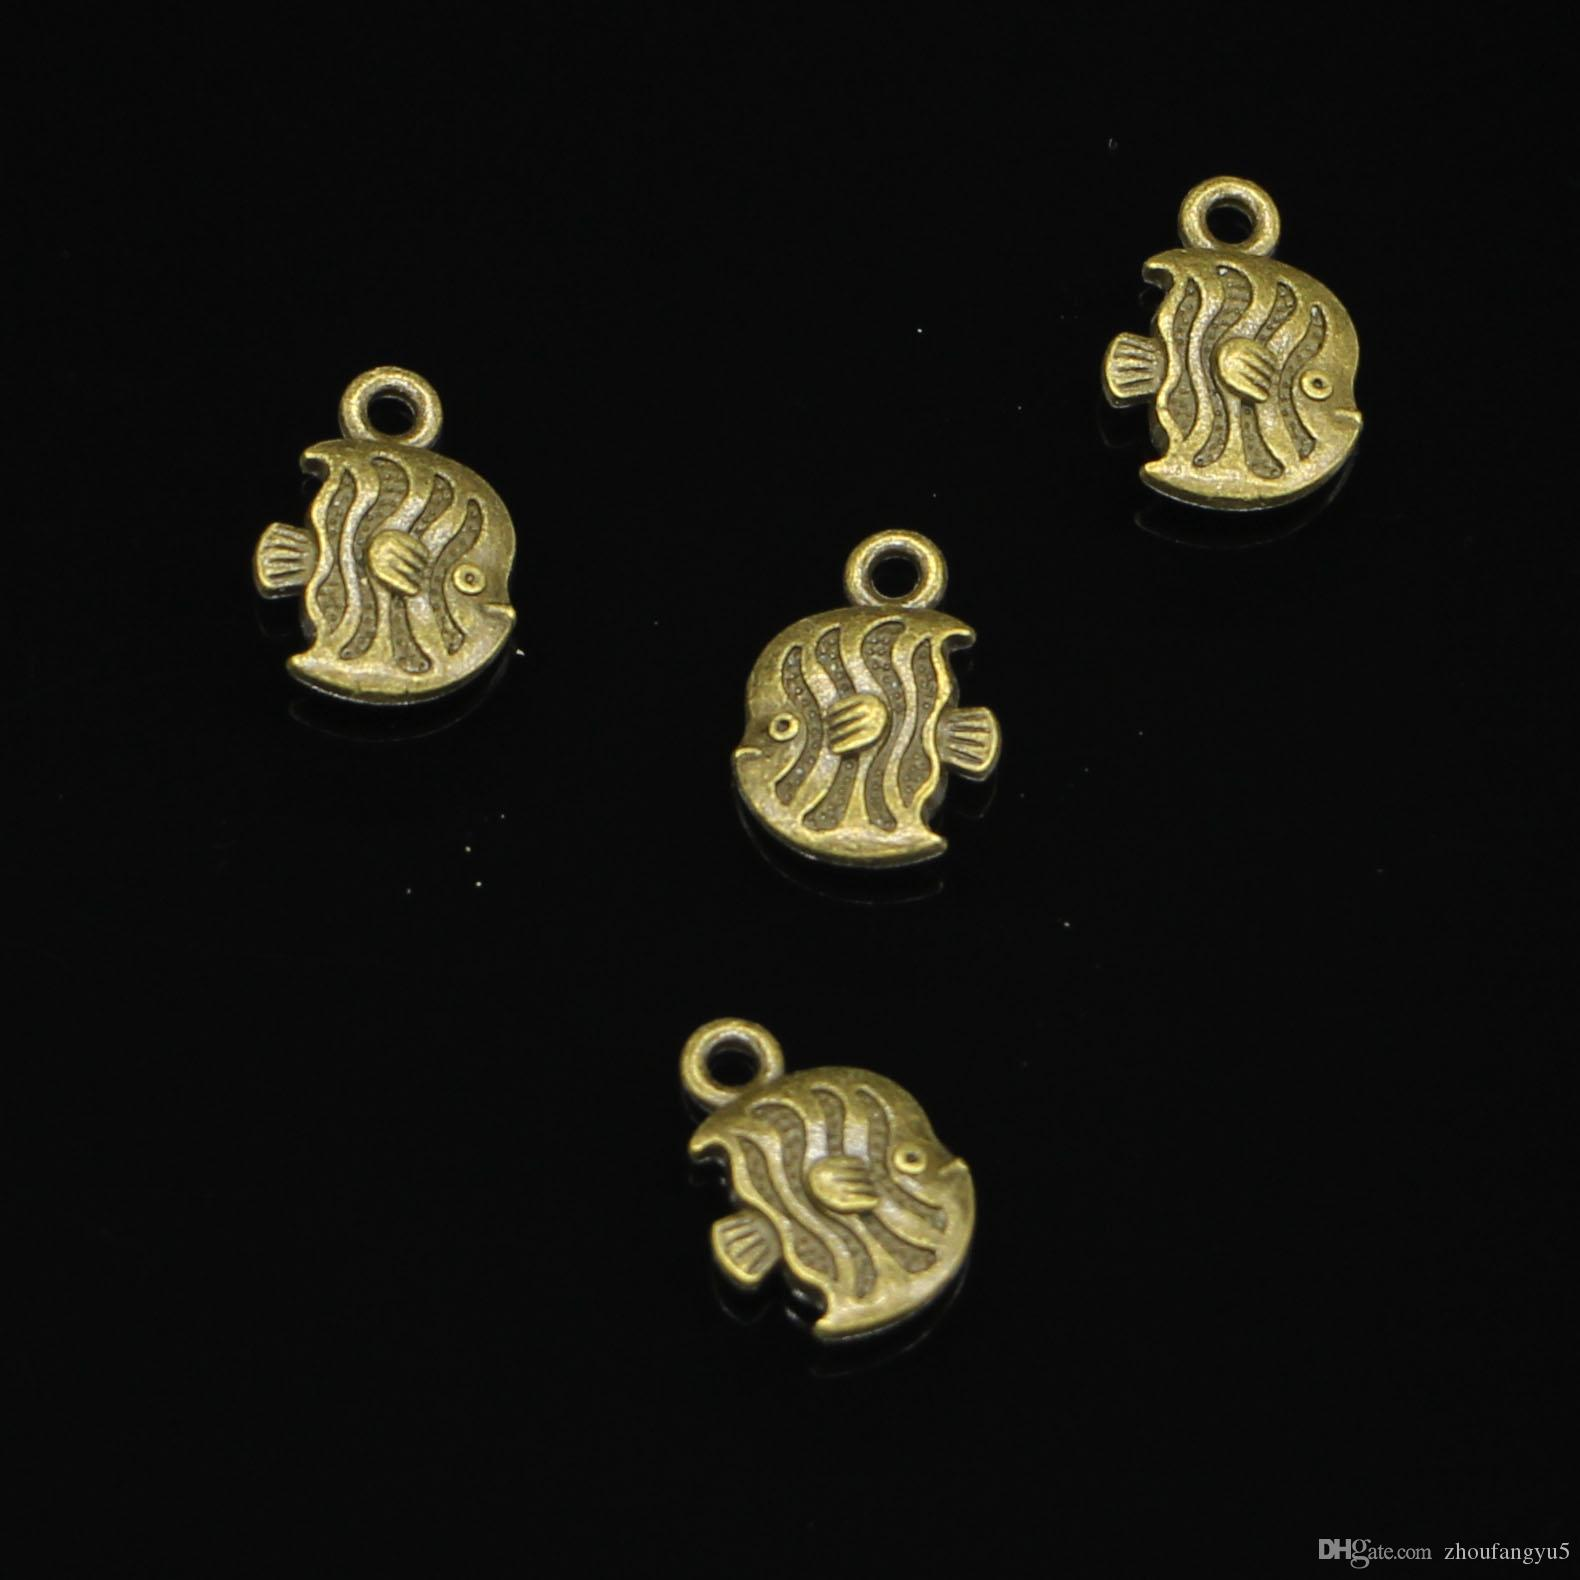 100pcs Zinc Alloy Charms Antique Bronze Plated tropical fish Charms for Jewelry Making DIY Handmade Pendants 15*11mm